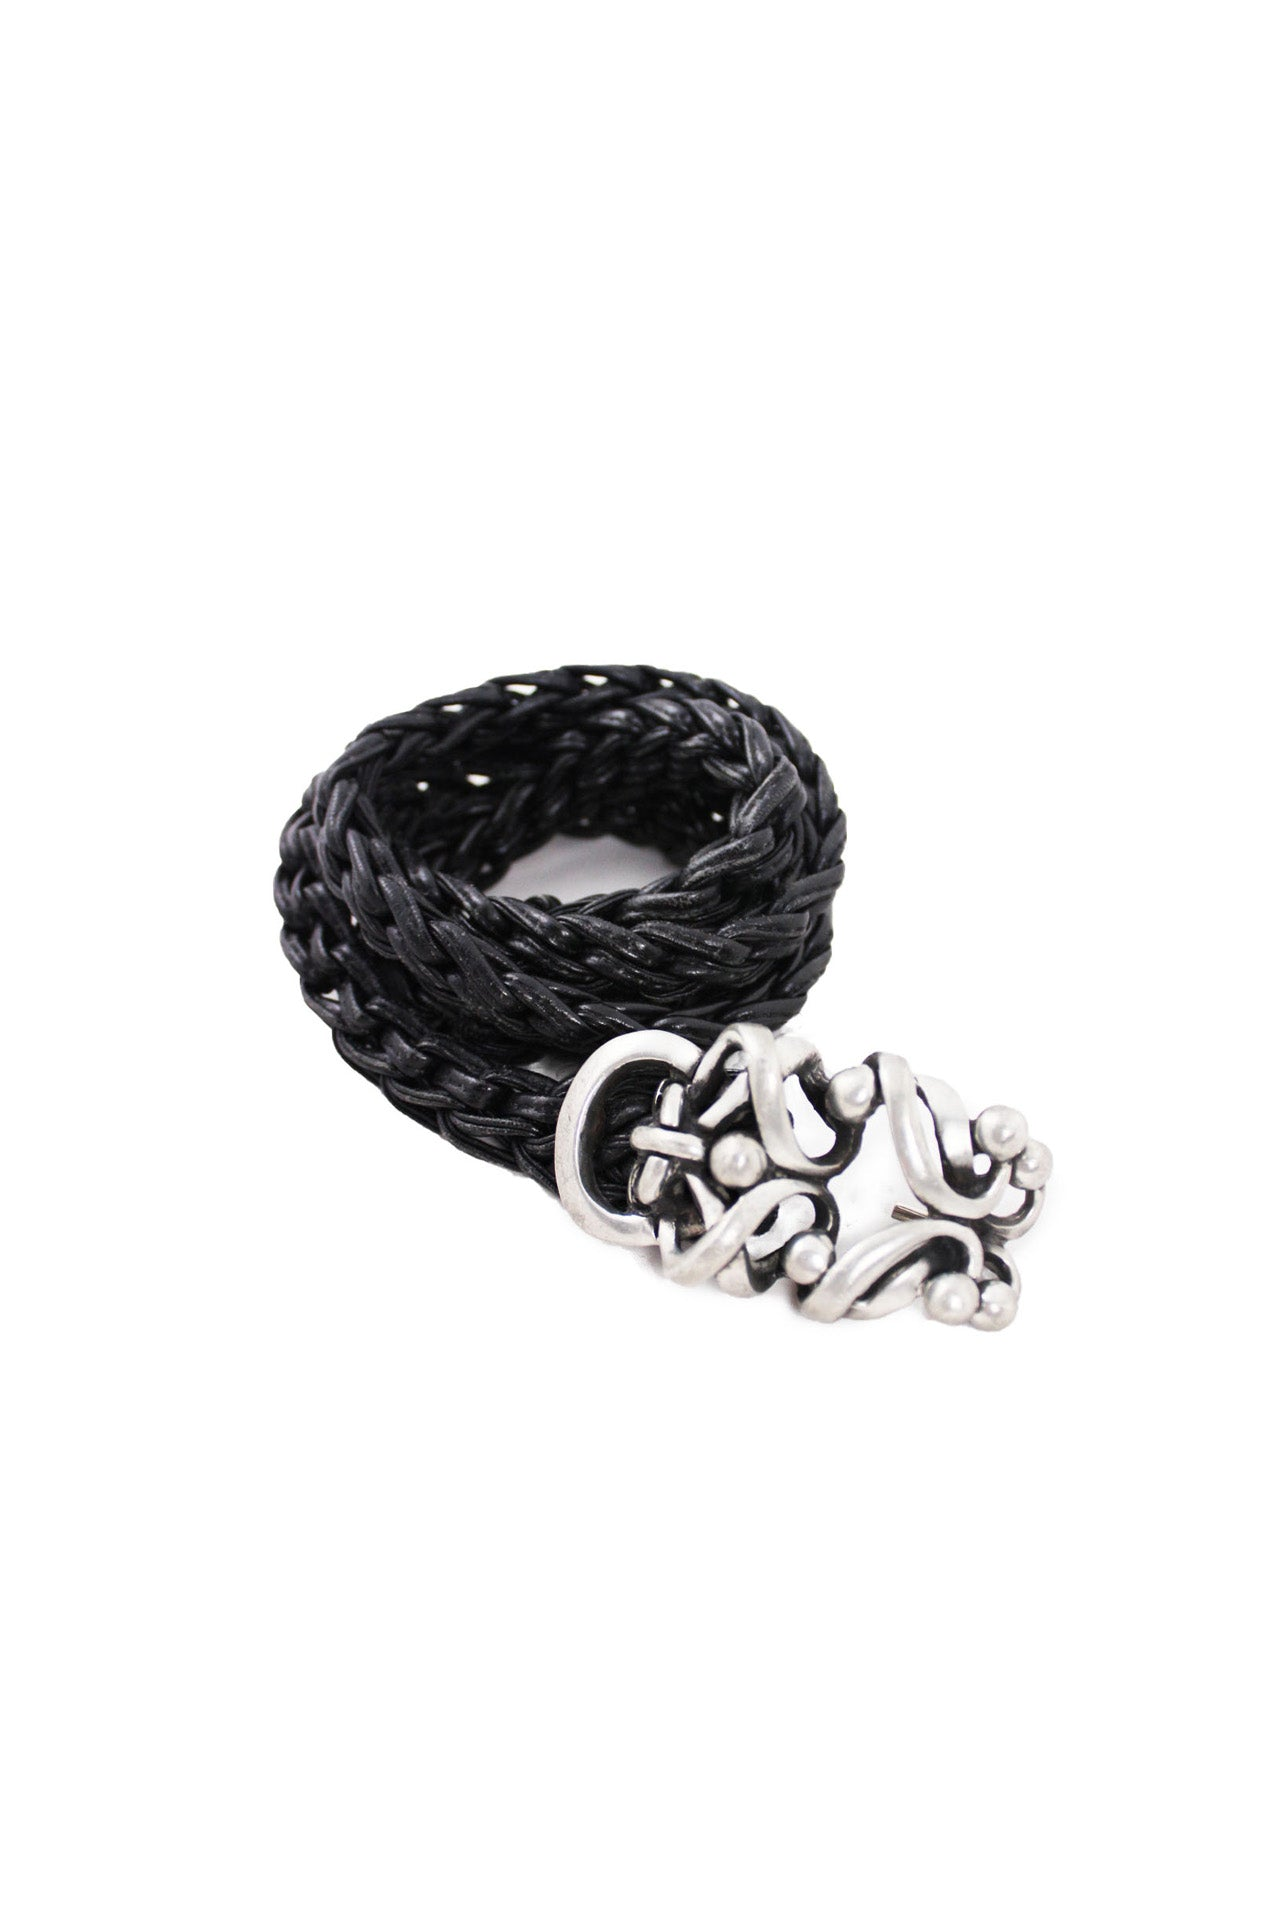 unlabeled black braided silver tone twisted buckle belt. features silver tone twisted buckle with hook closure and black braided exterior.